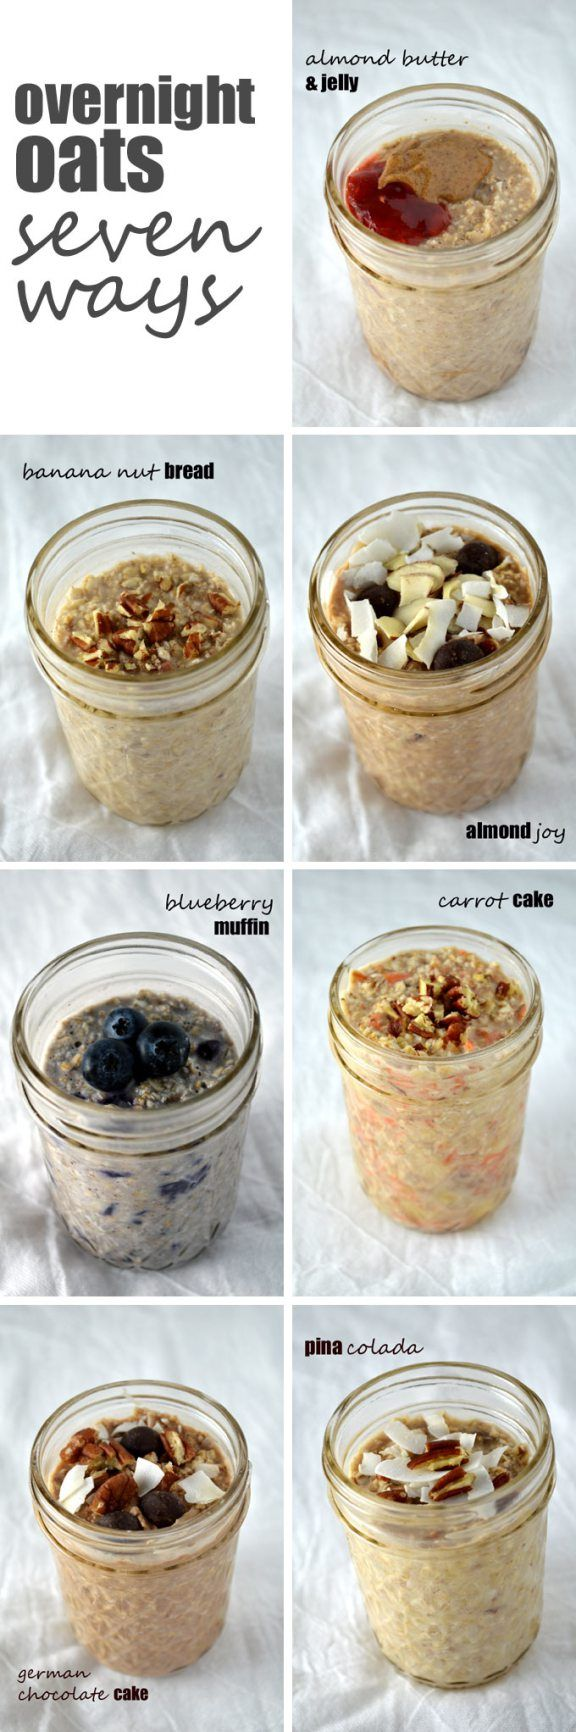 Overnight Oats Seven Ways @AnotherRoot #breakfast #recipes #brunch #easy #recipe